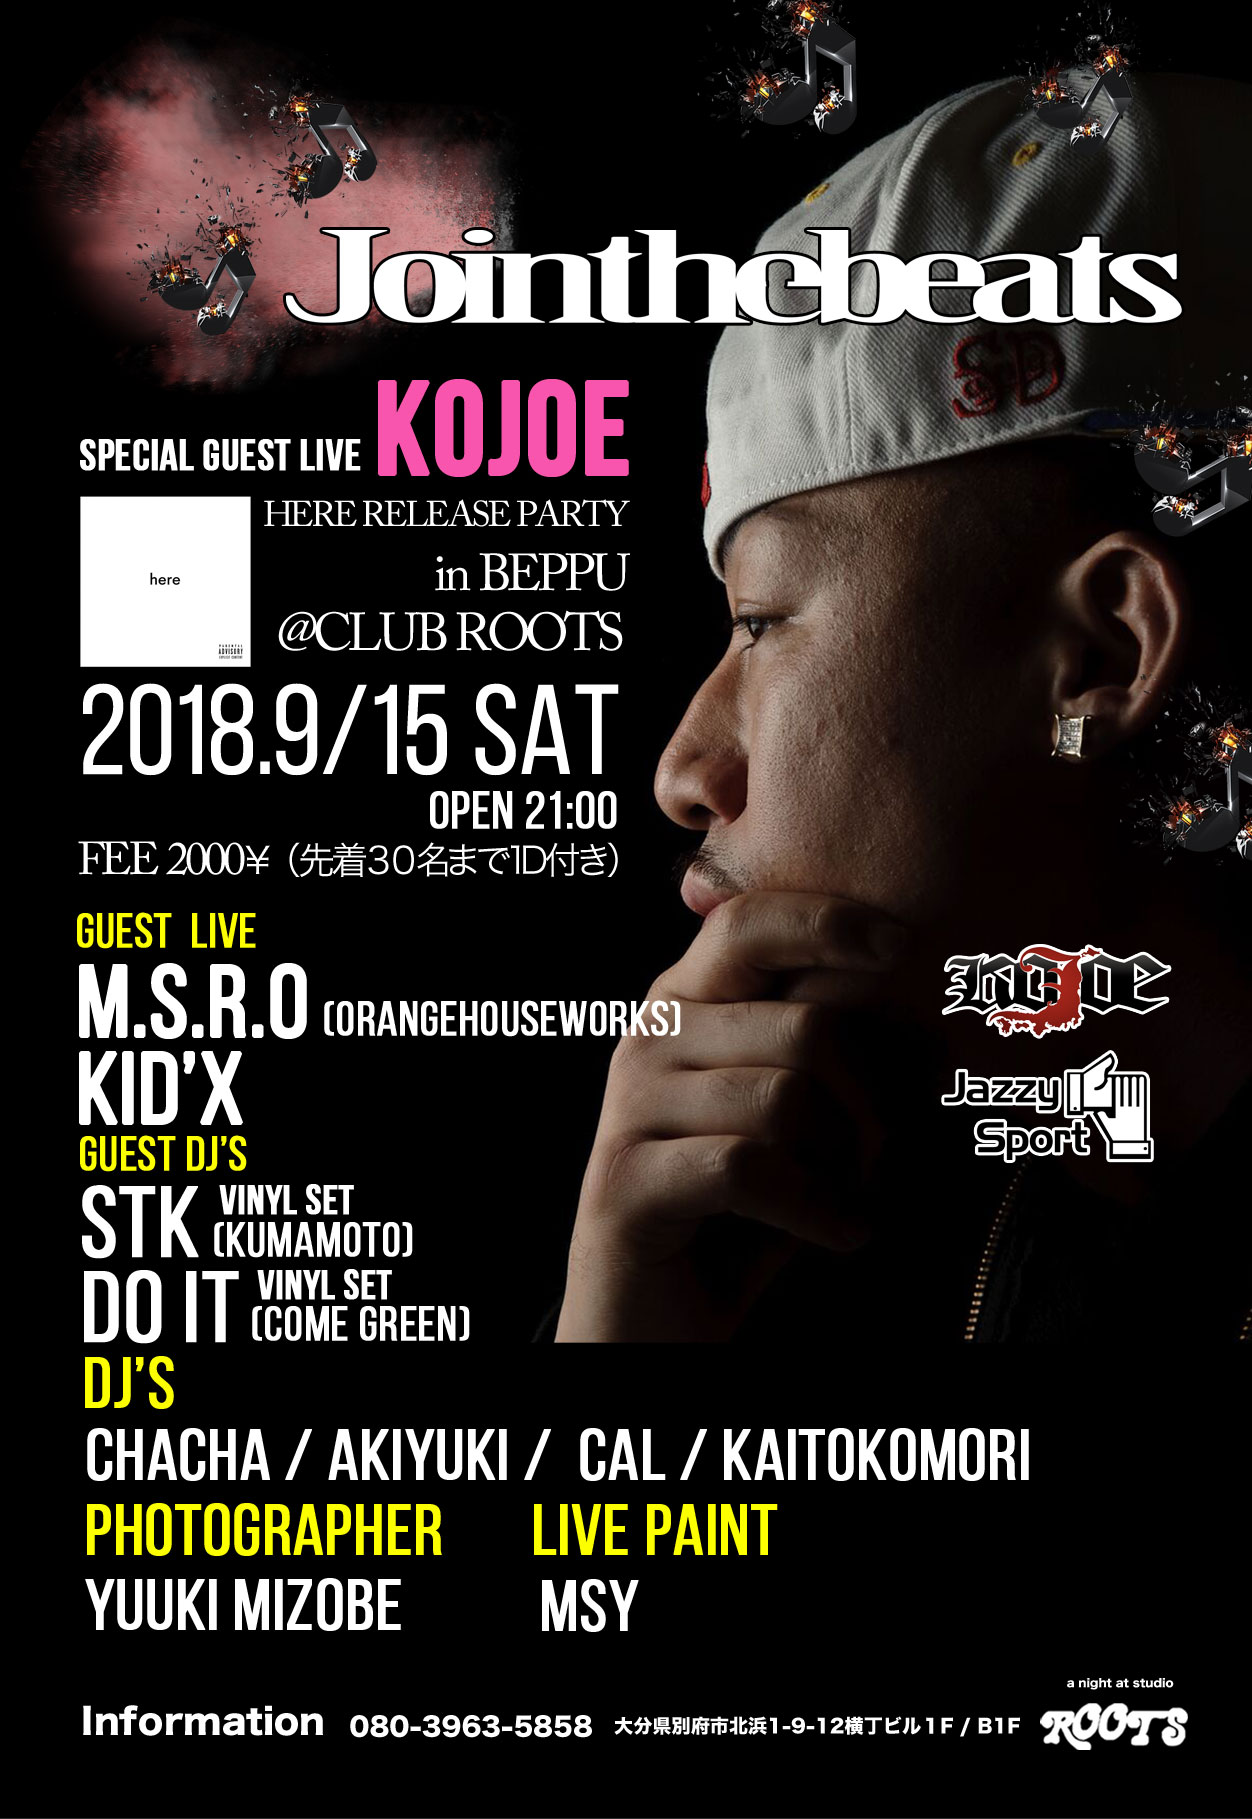 KOJOE 【here】release party in BEPPU